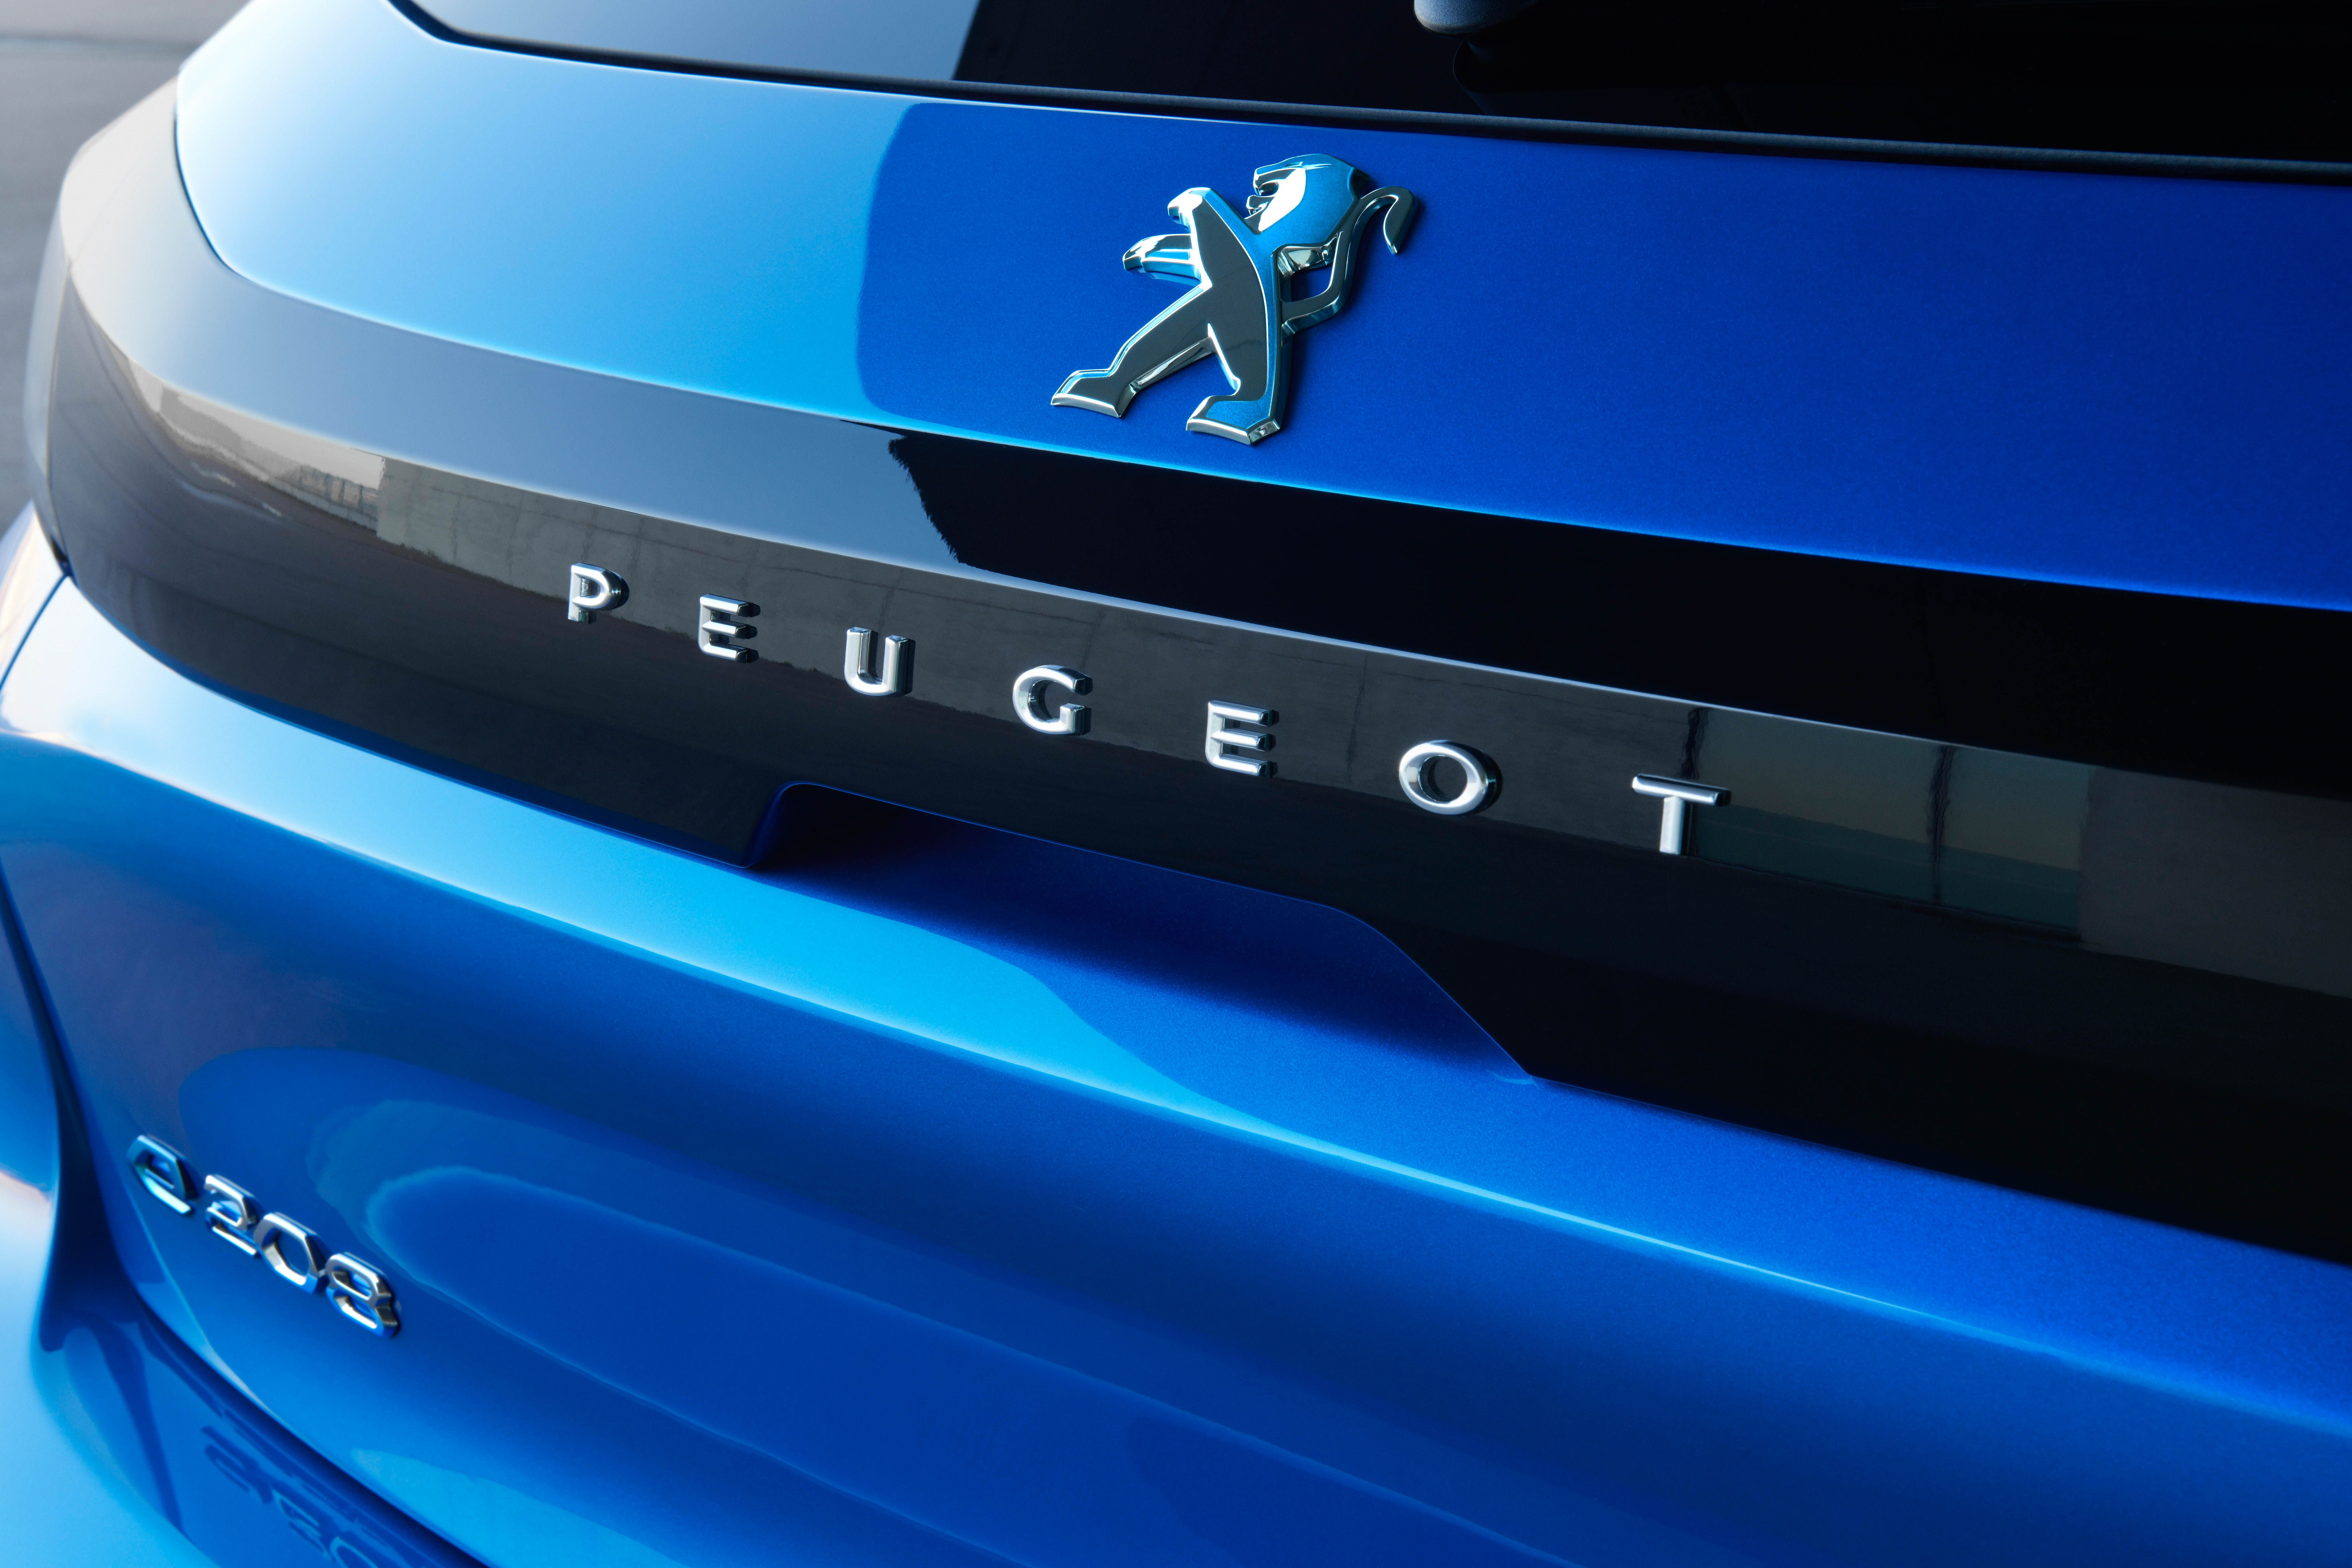 peugeot cars coming back to the u.s. – ledfrench company psa